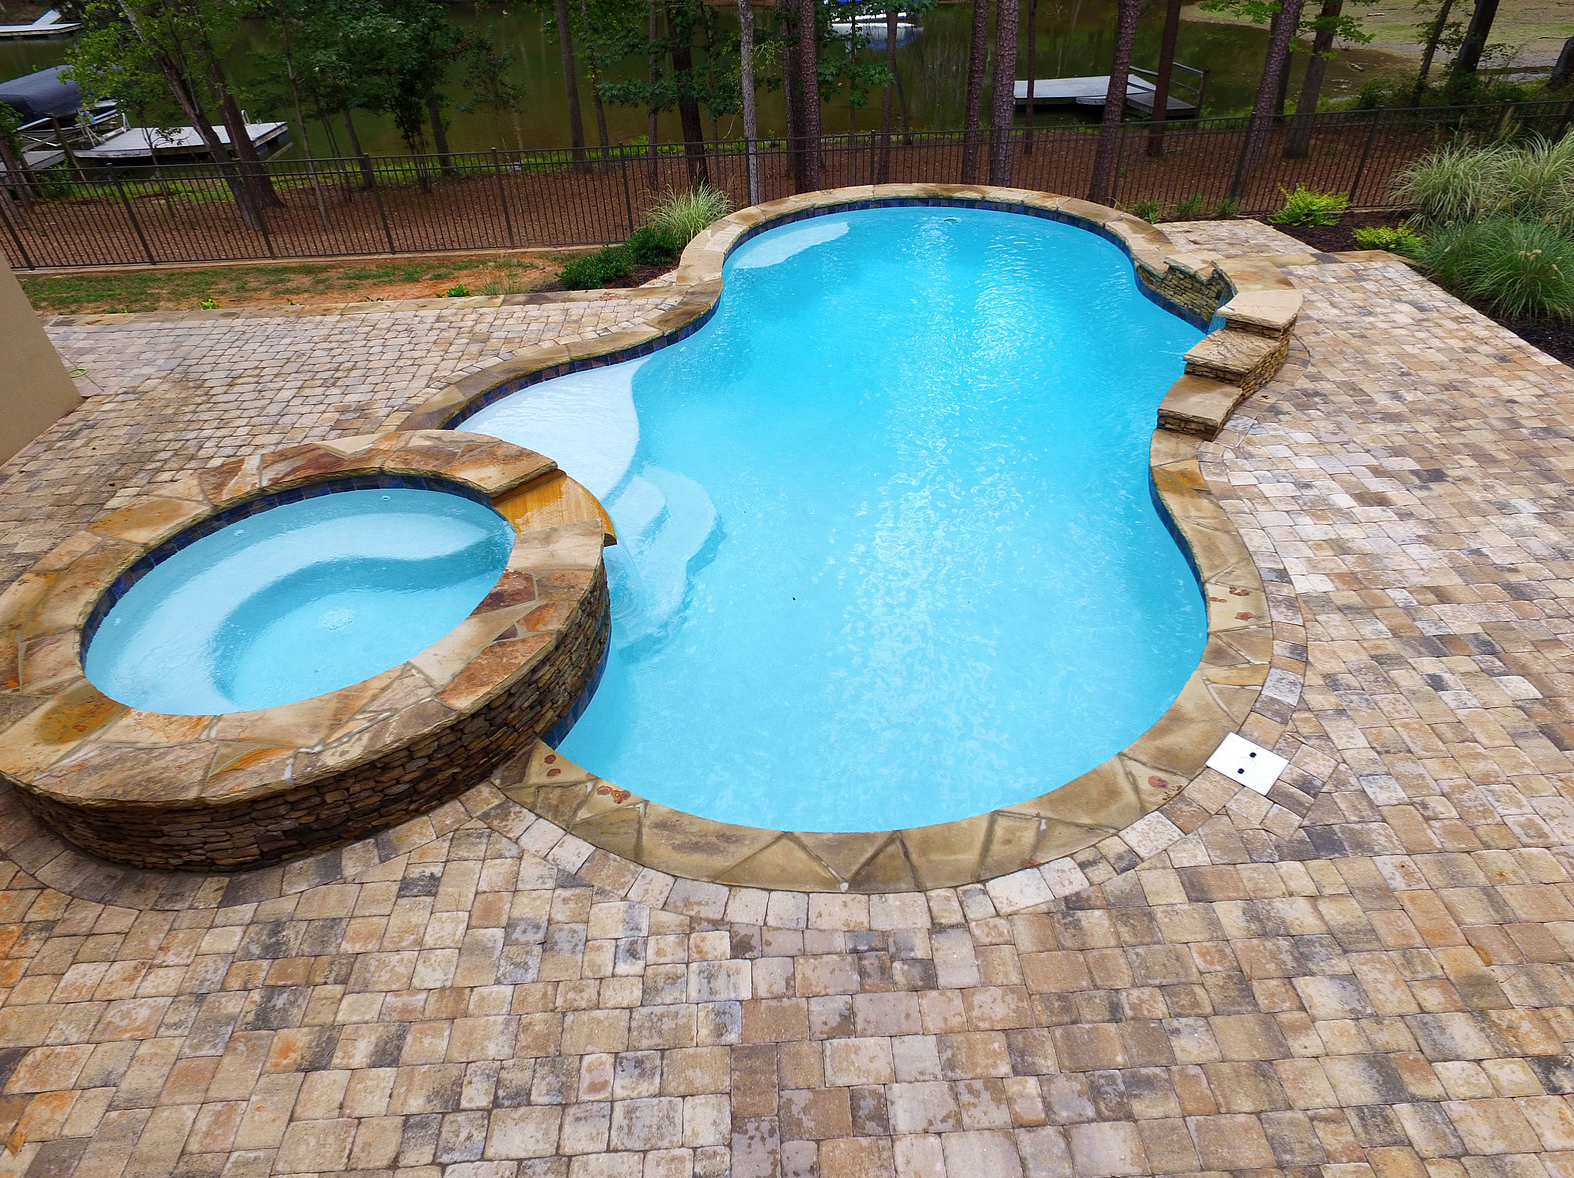 Superior pool builders carolina pool consultants discuss - Concrete swimming pools vs fiberglass ...